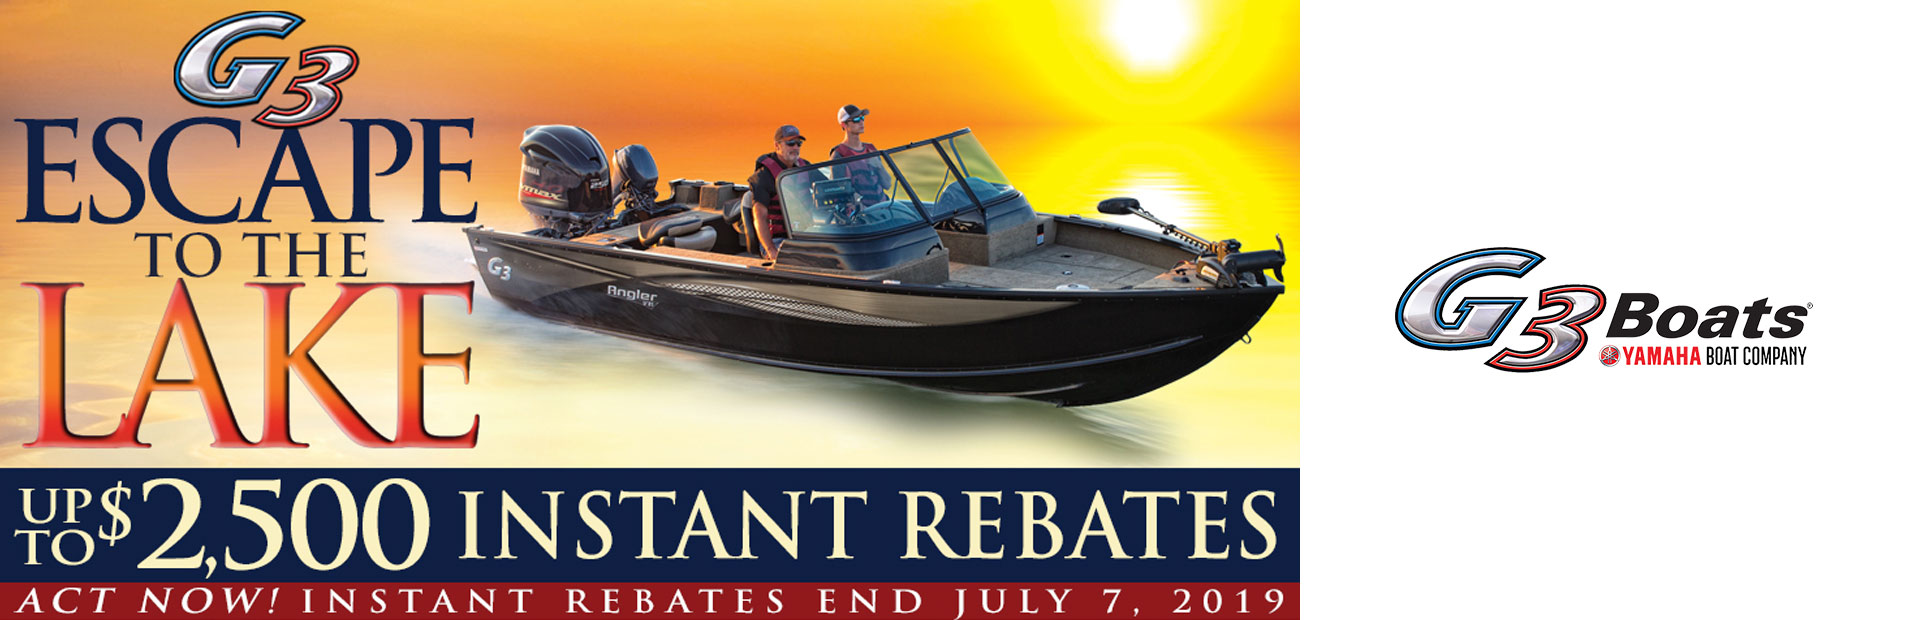 G3: Escape to the Lake Rebates Angler V Series